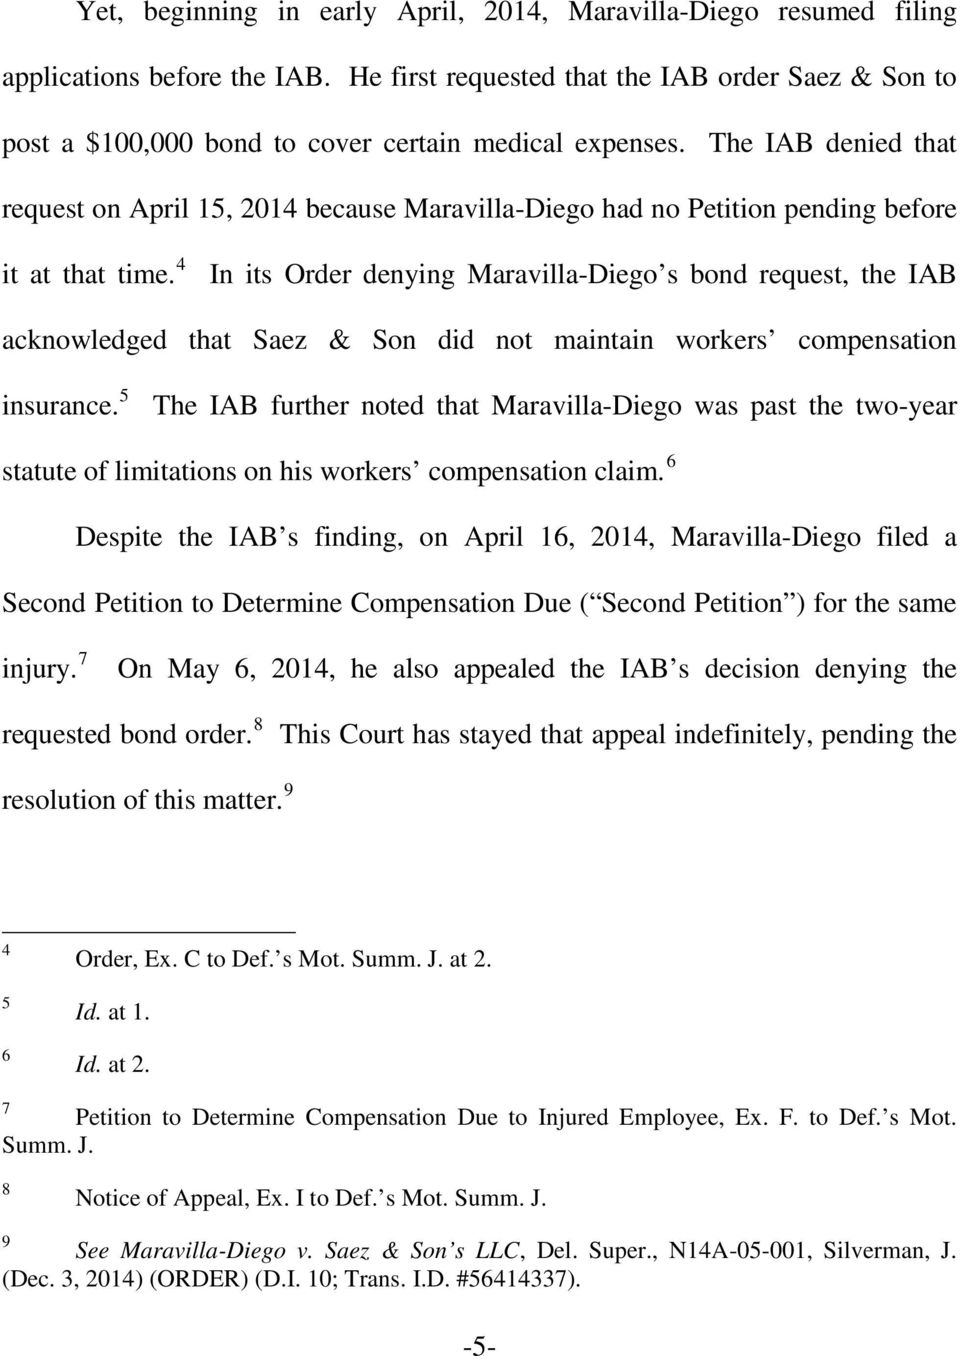 The IAB denied that request on April 15, 2014 because Maravilla-Diego had no Petition pending before it at that time.